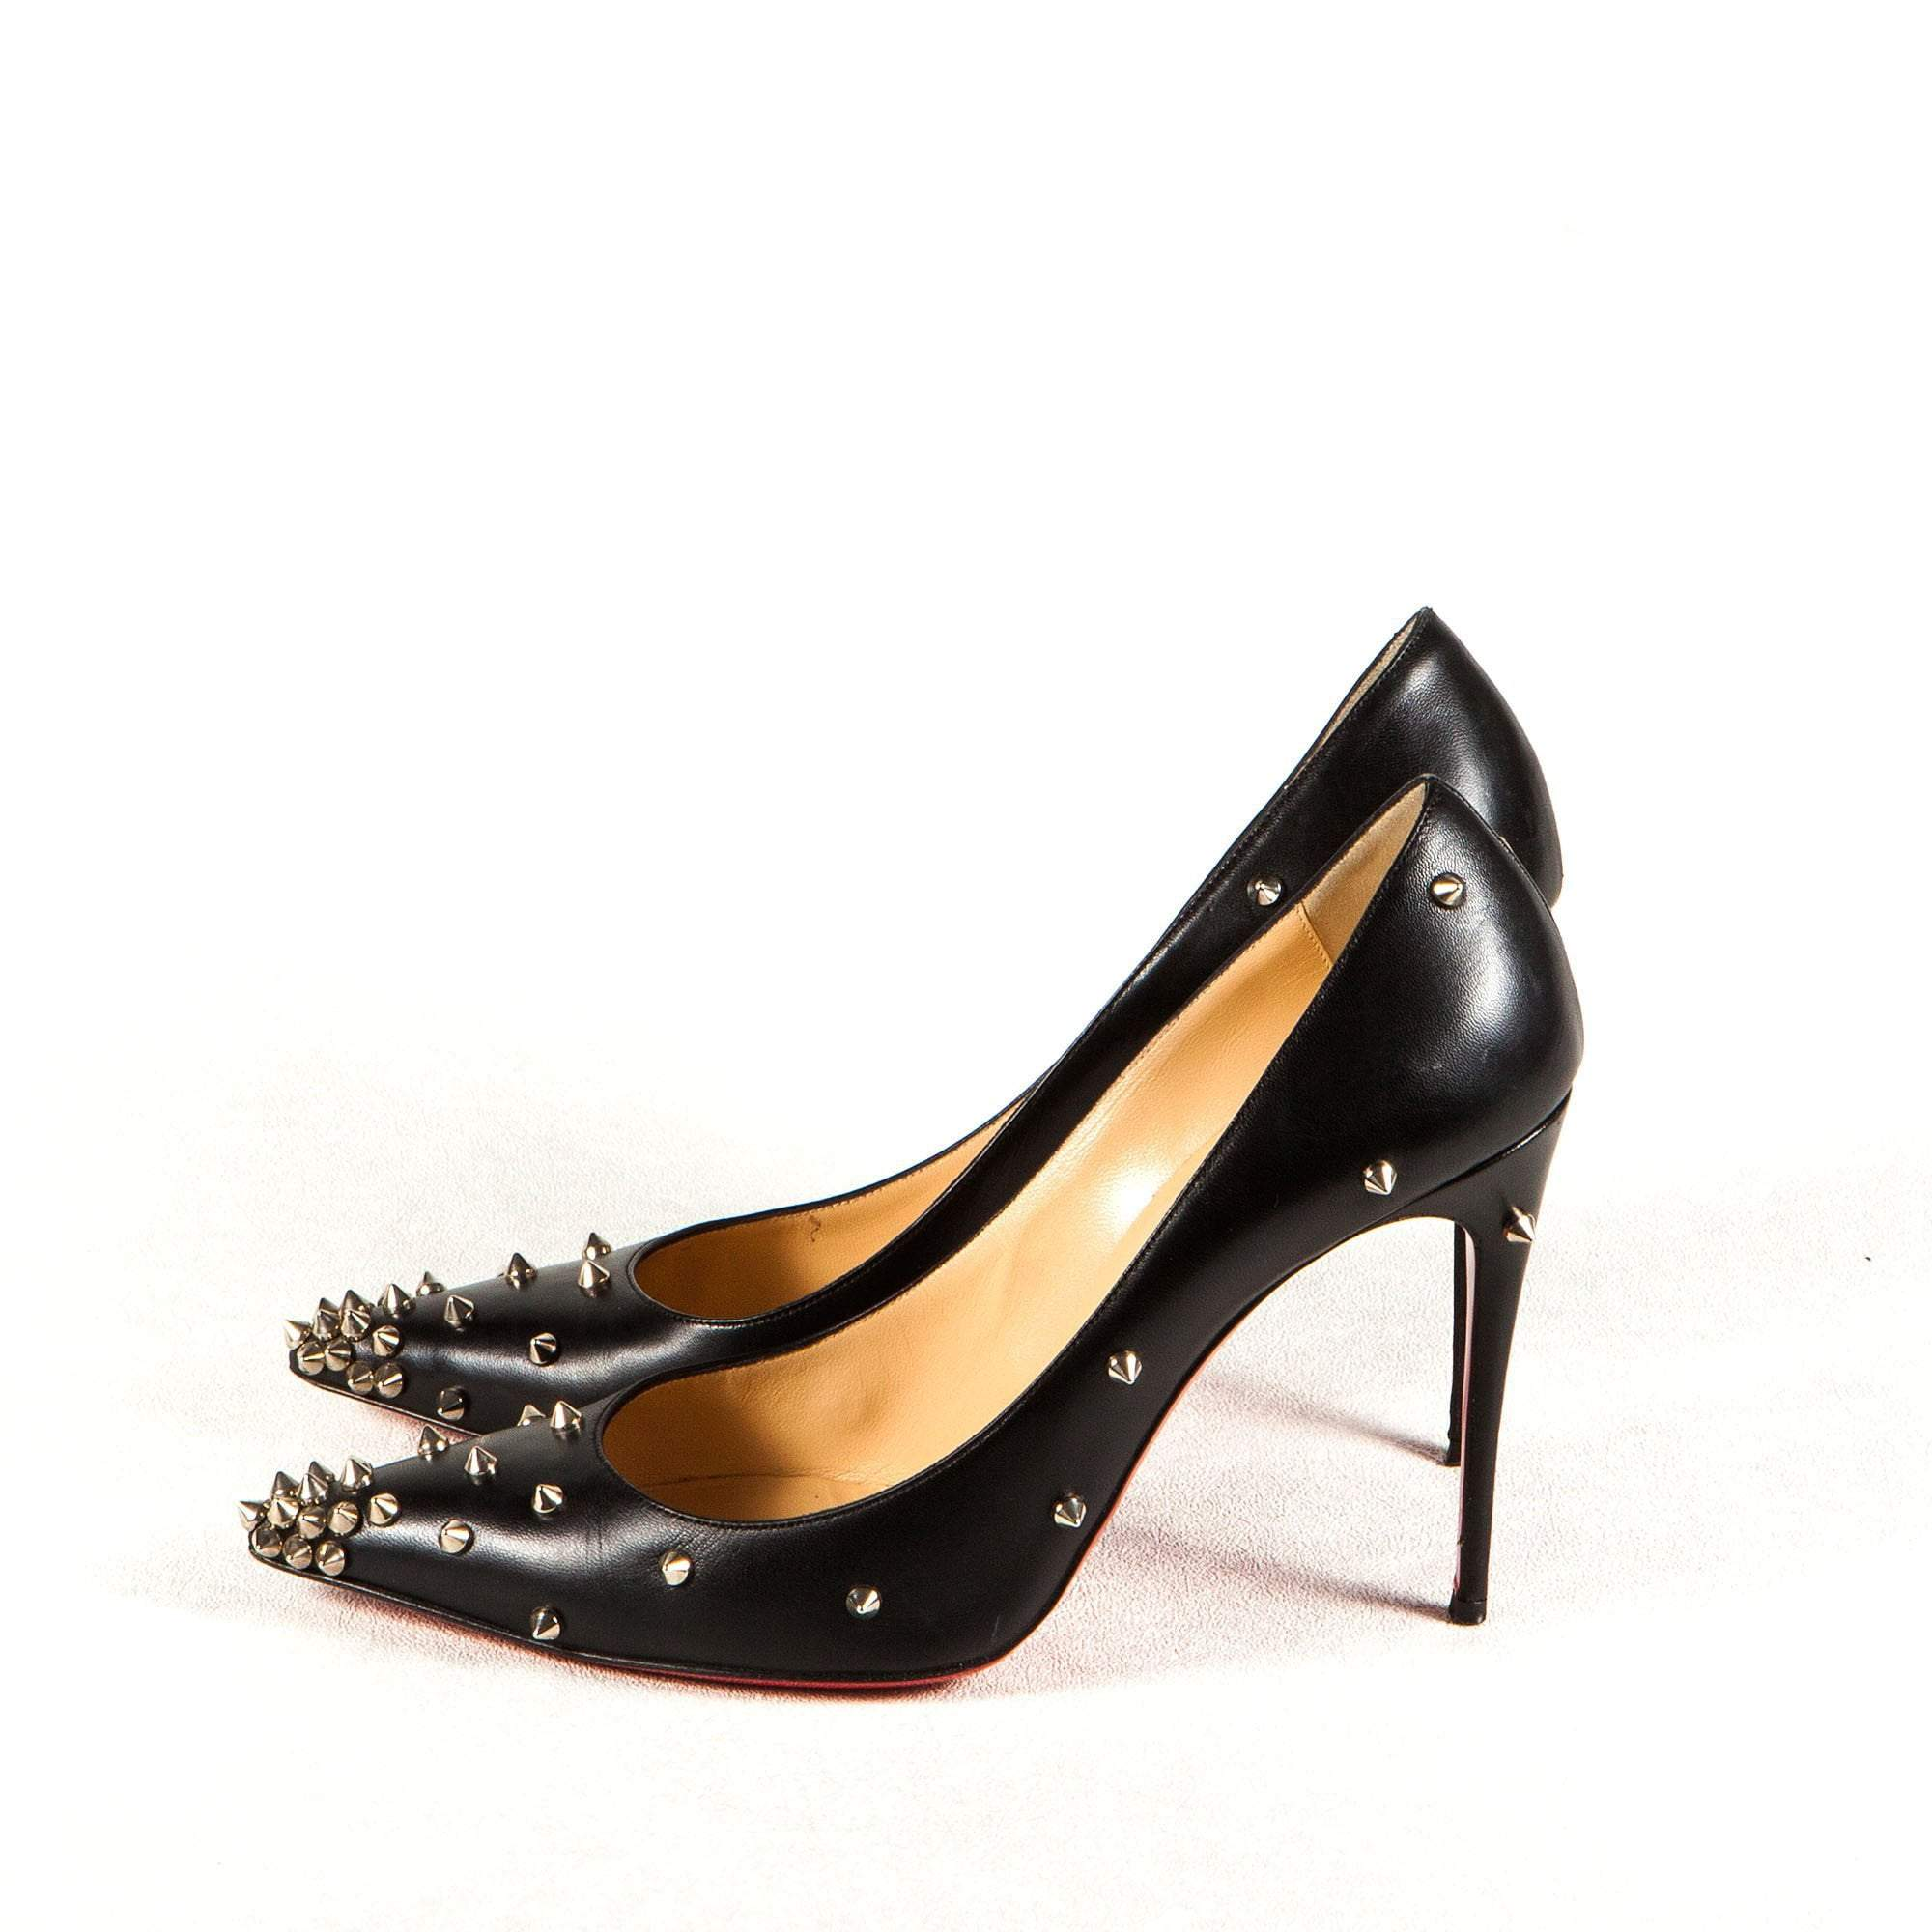 Christian Louboutin Black Studded Pumps